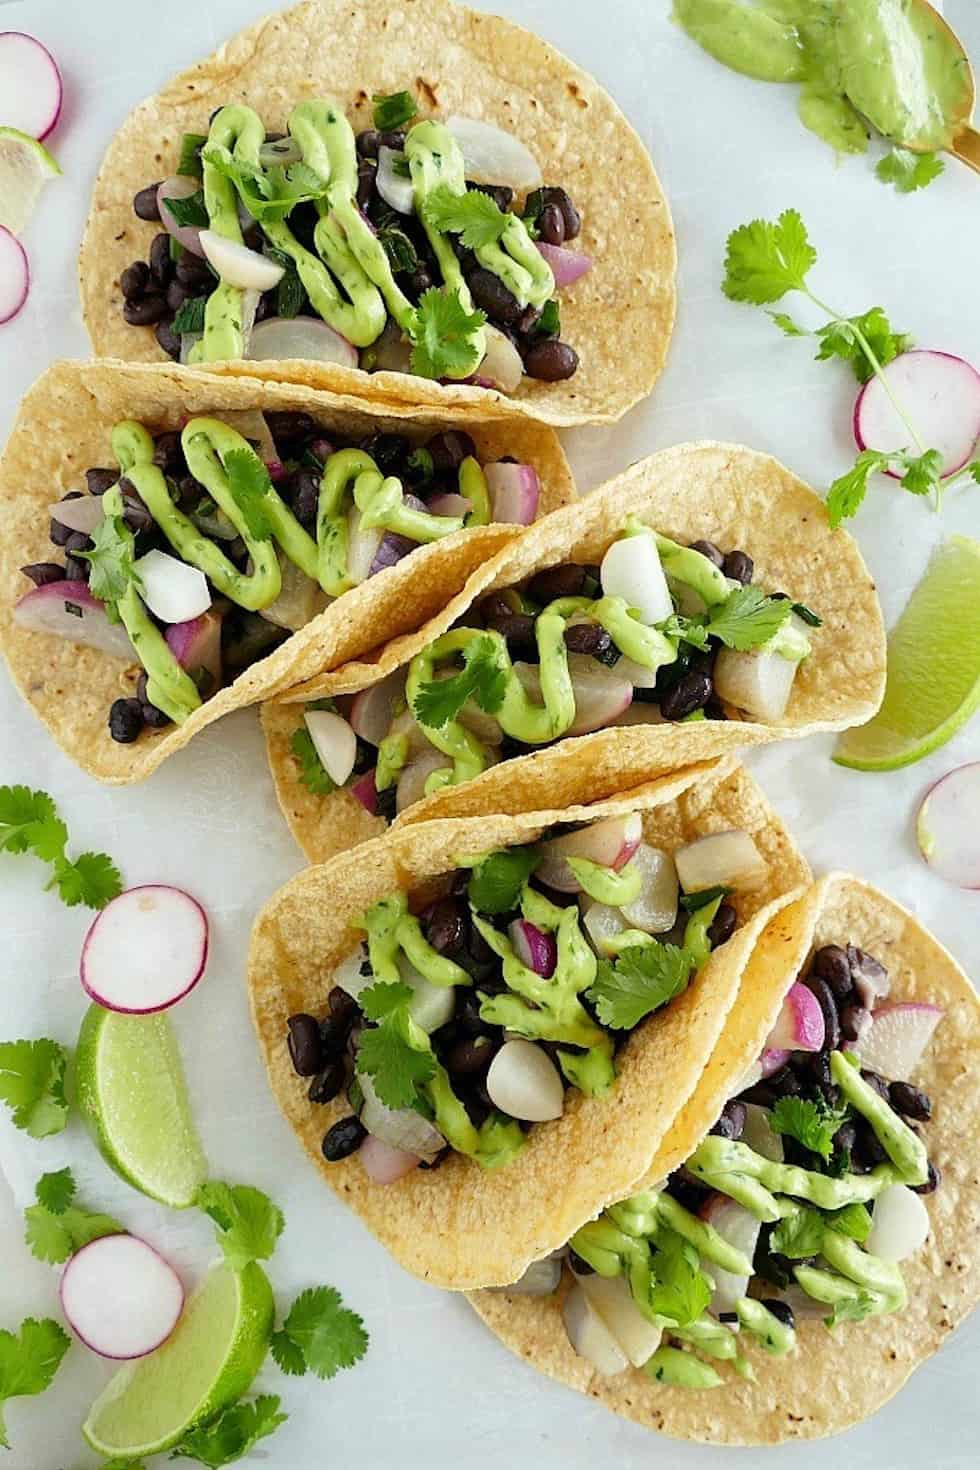 Black bean tacos with avocado crema on white background with limes, radish, and cilantro garnish.